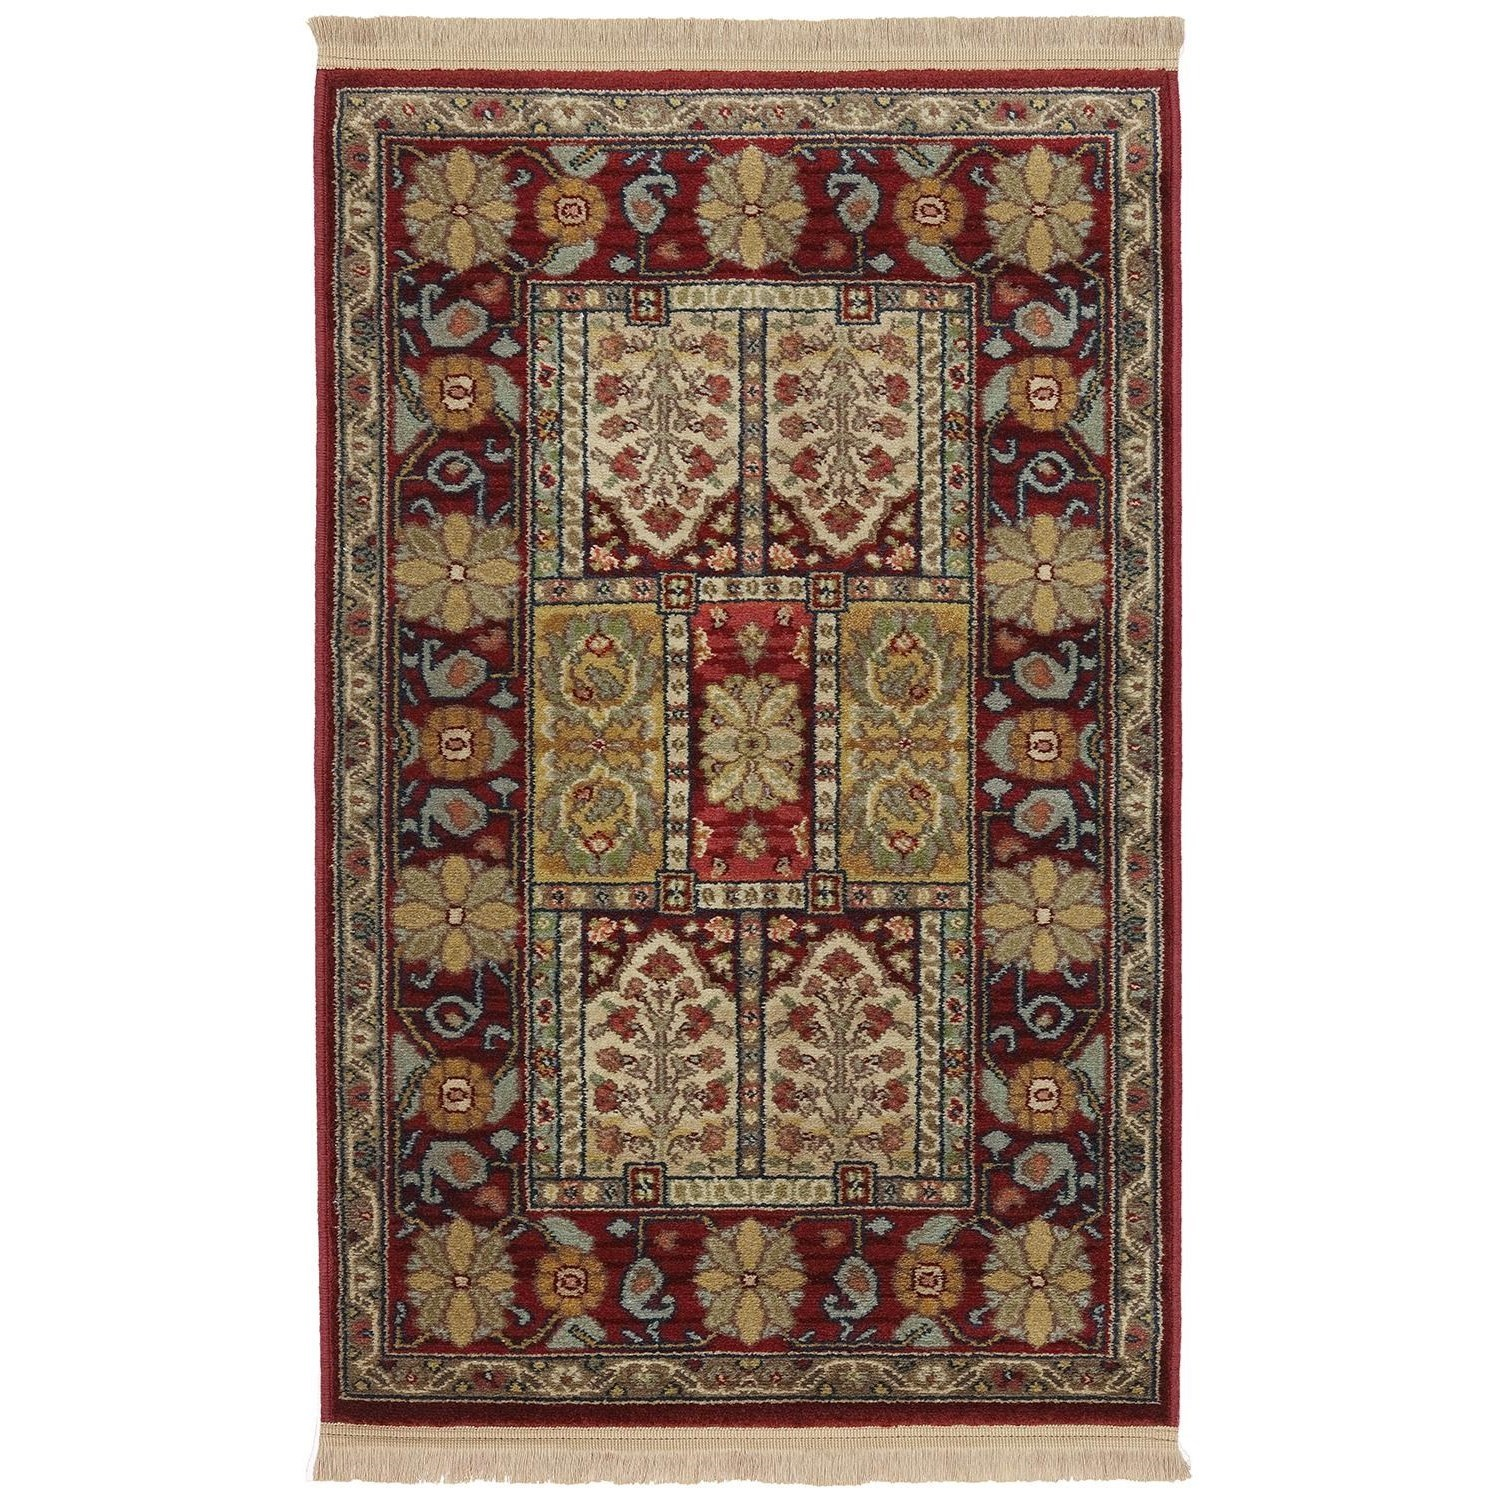 Karastan Rugs Antique Legends 2'6x4' Bakhtiyari Rug - Item Number: 02200 00202 030048